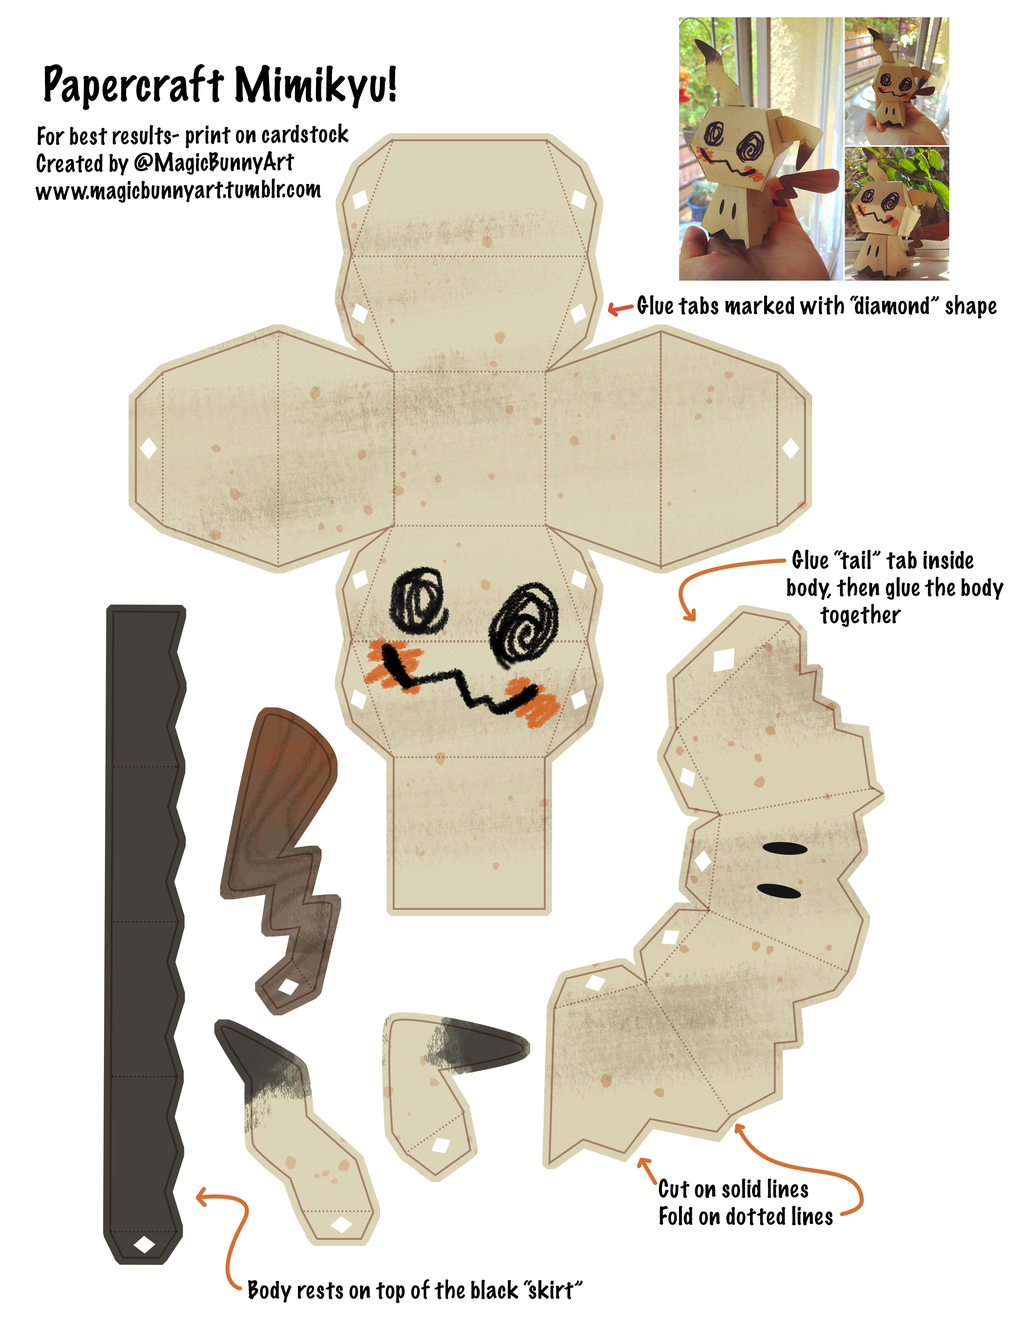 Mimikyu Papercraft Template By Magicbunnyart On Deviantart  Diy